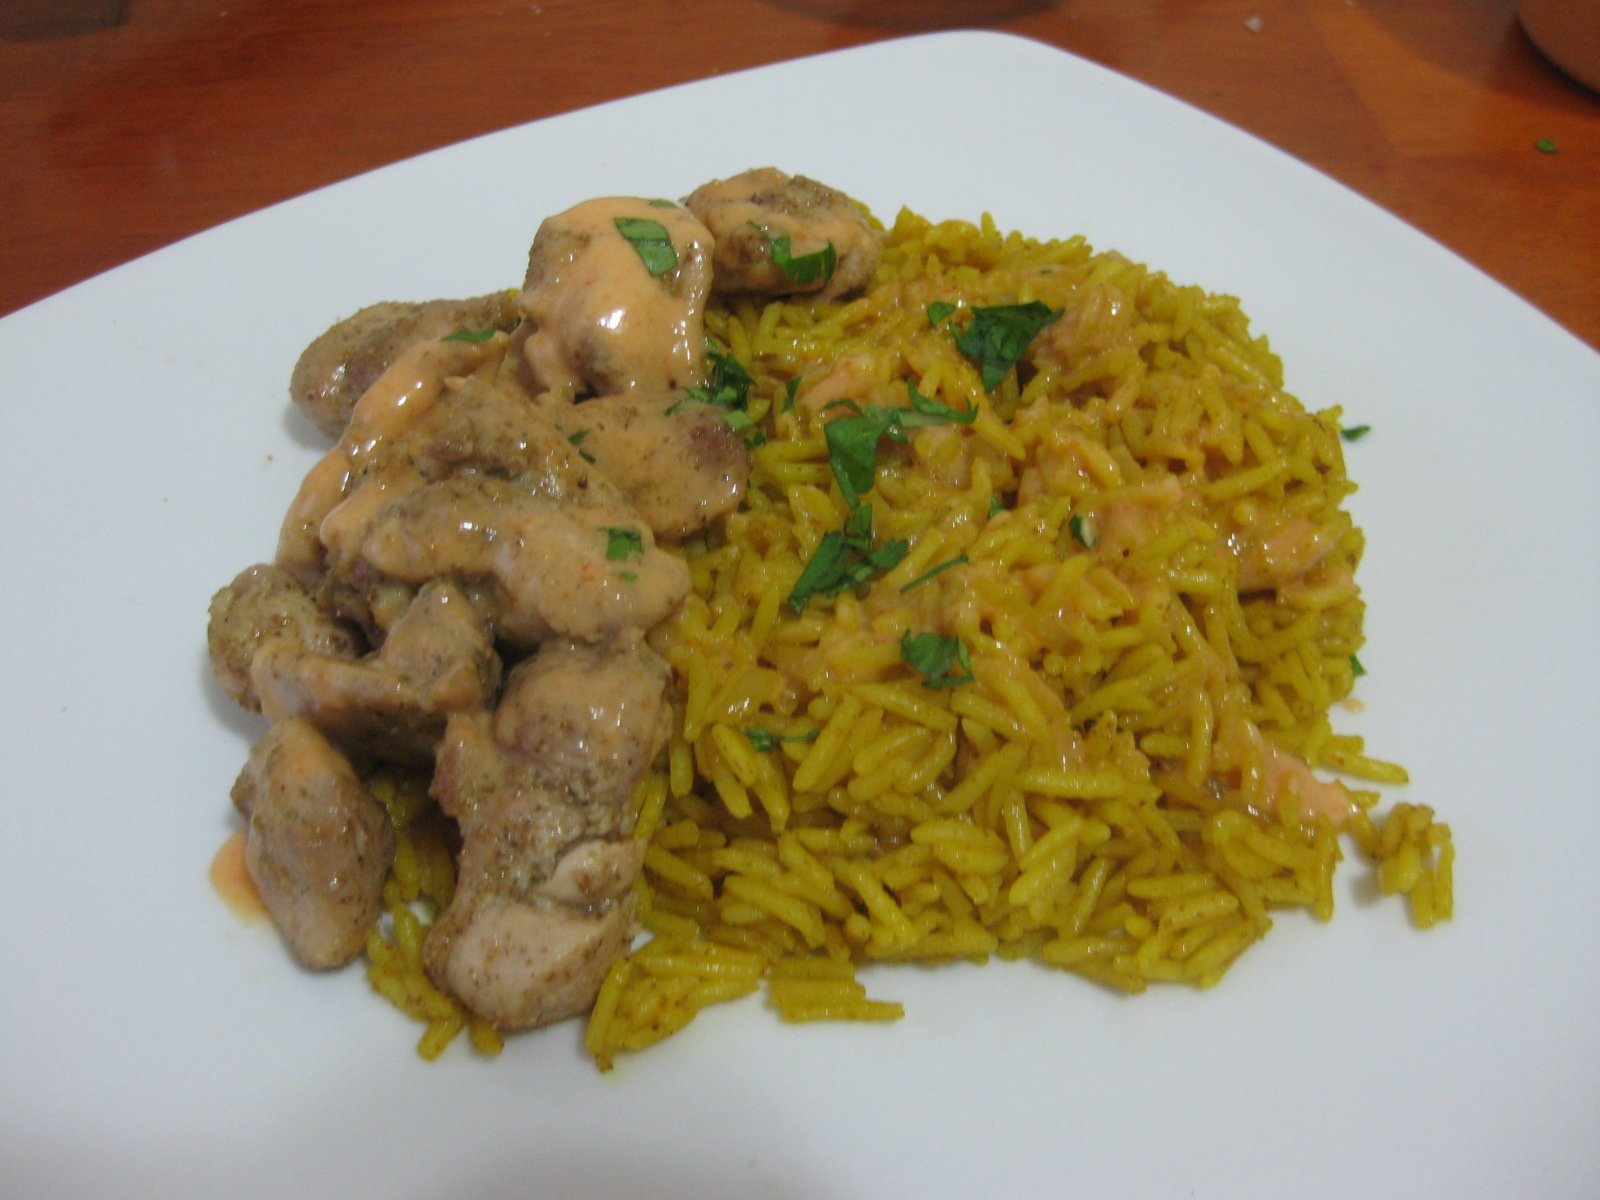 Rice pilaf with sauteed chicken and sriracha creme fraiche, the entree of that dinner.